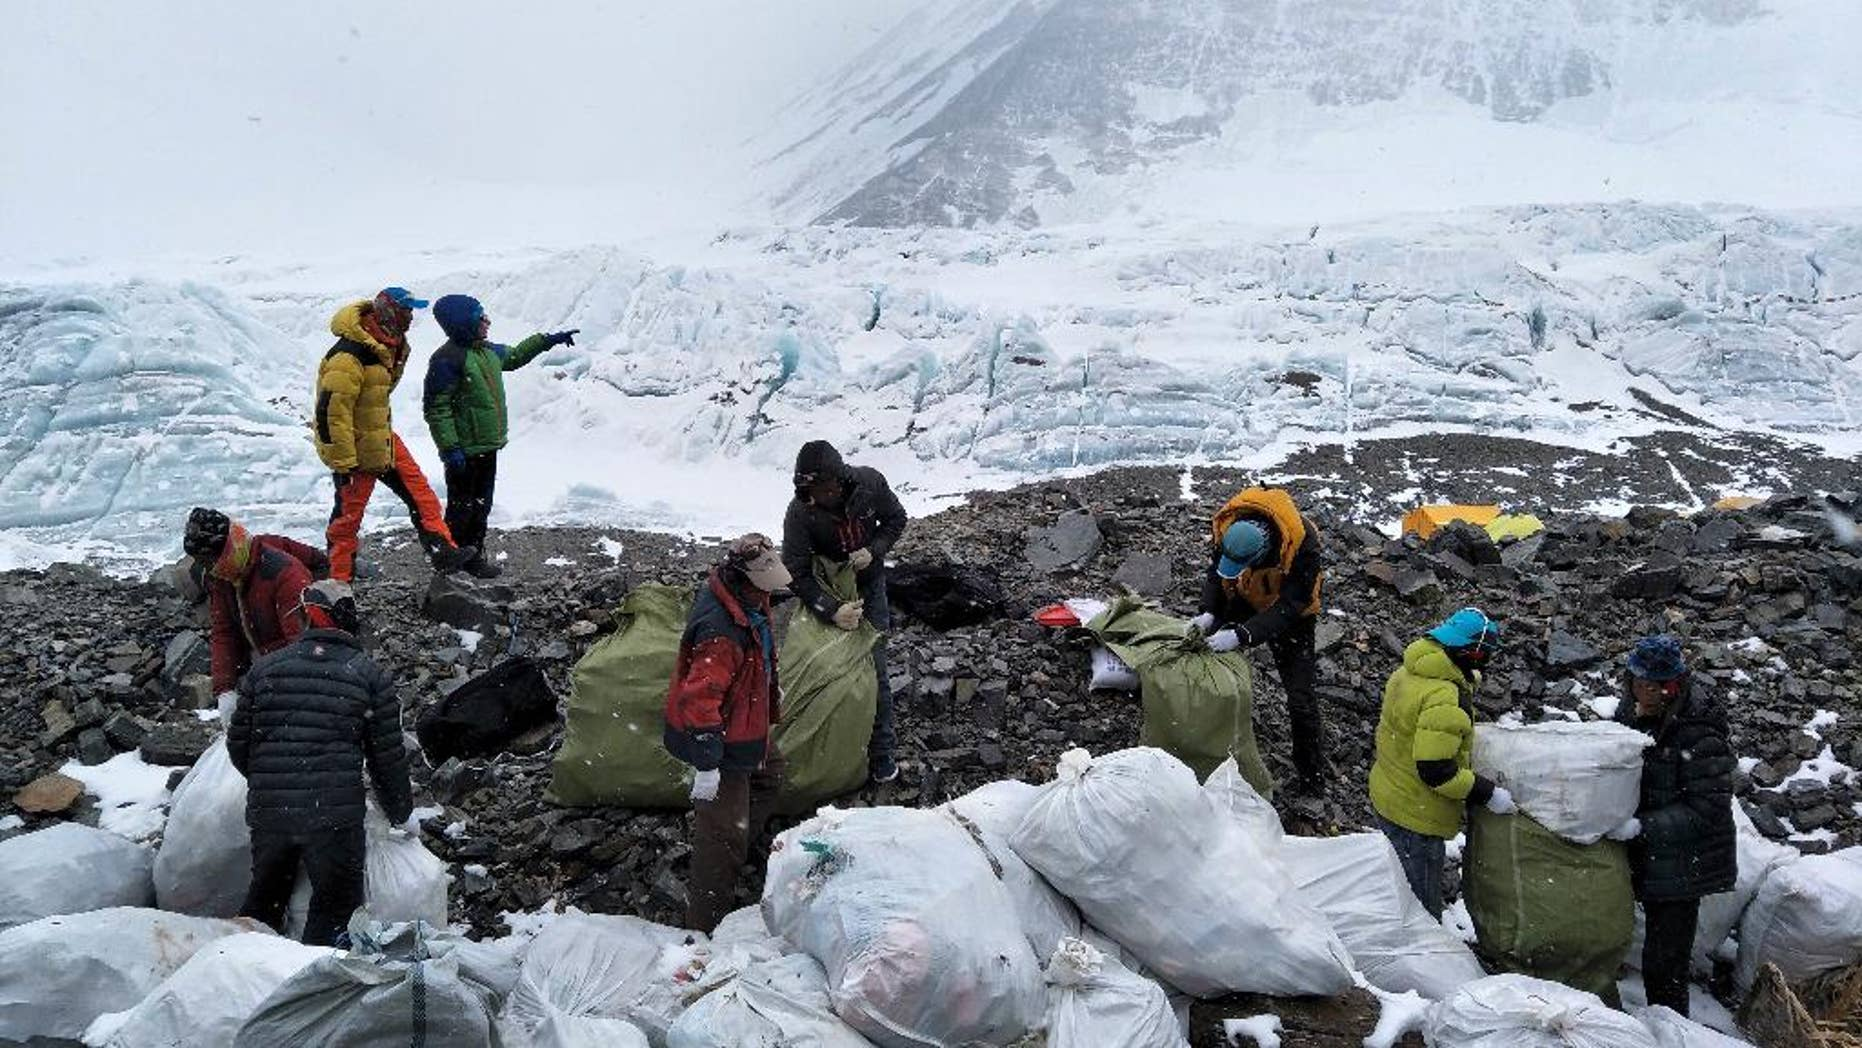 In this Monday, May 8, 2017 photo released by Xinhua News Agency, people collect garbage at the north slope of the Mount Qomolangma in southwest China's Tibet Autonomous Region. Workers and volunteers collected four tons of garbage from the Chinese north side of Mount Everest in the first five days of a cleanup operation.